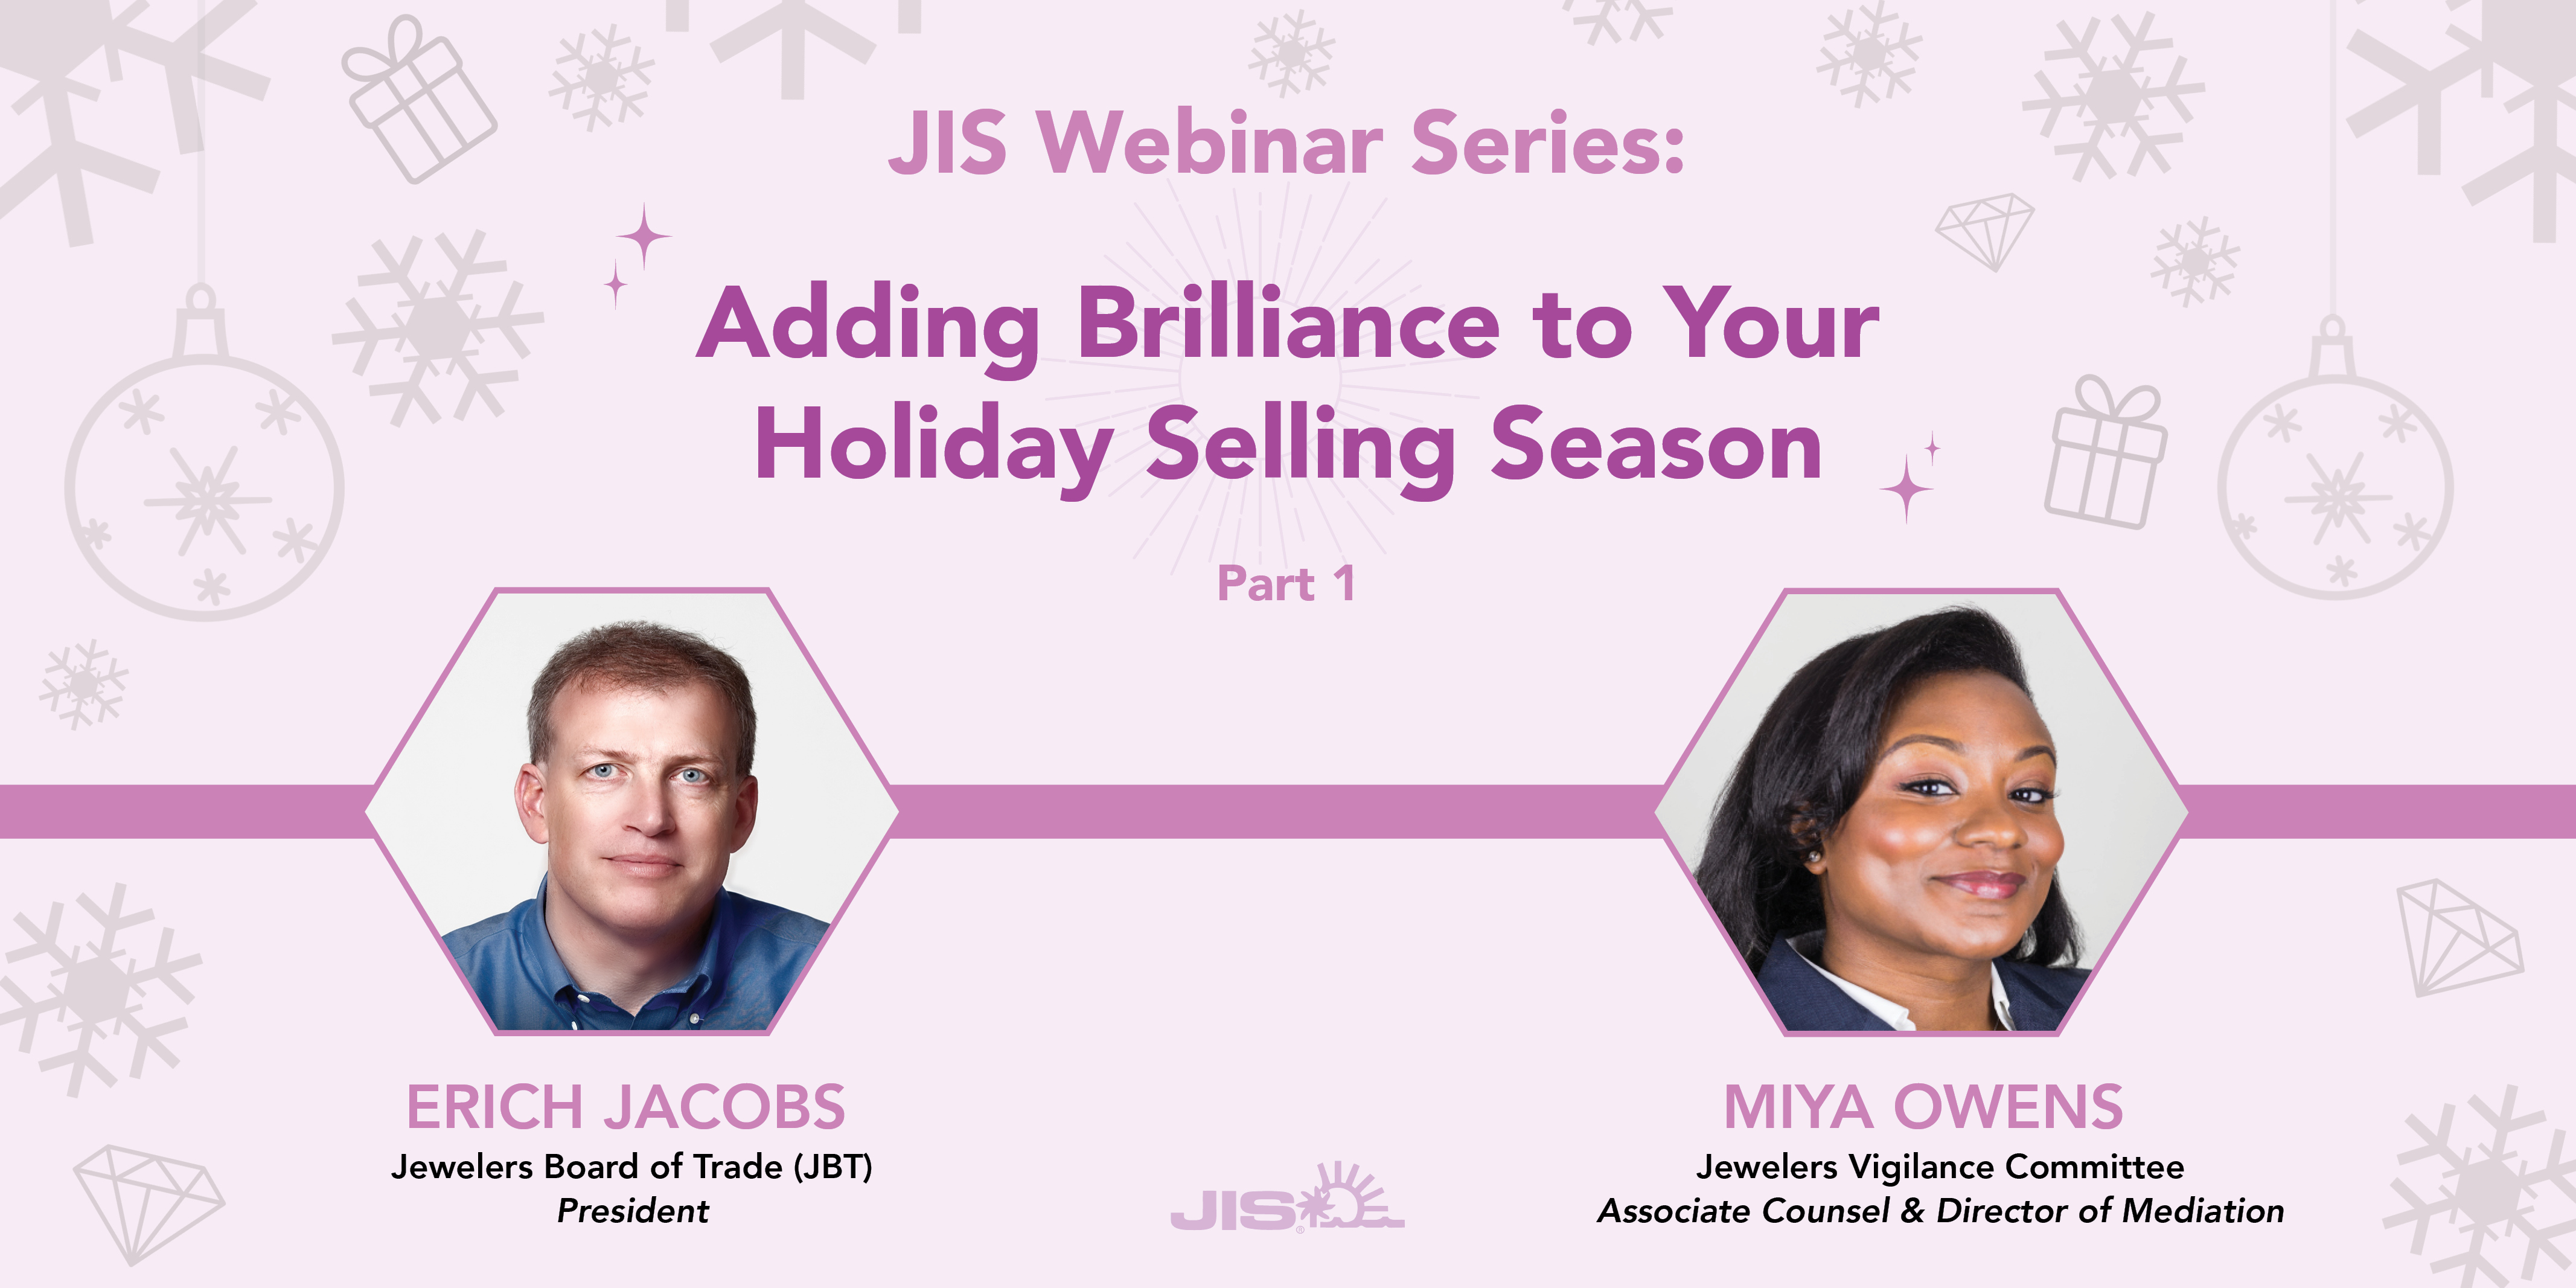 Adding Brilliance To Your Holiday Selling Season: Part 1